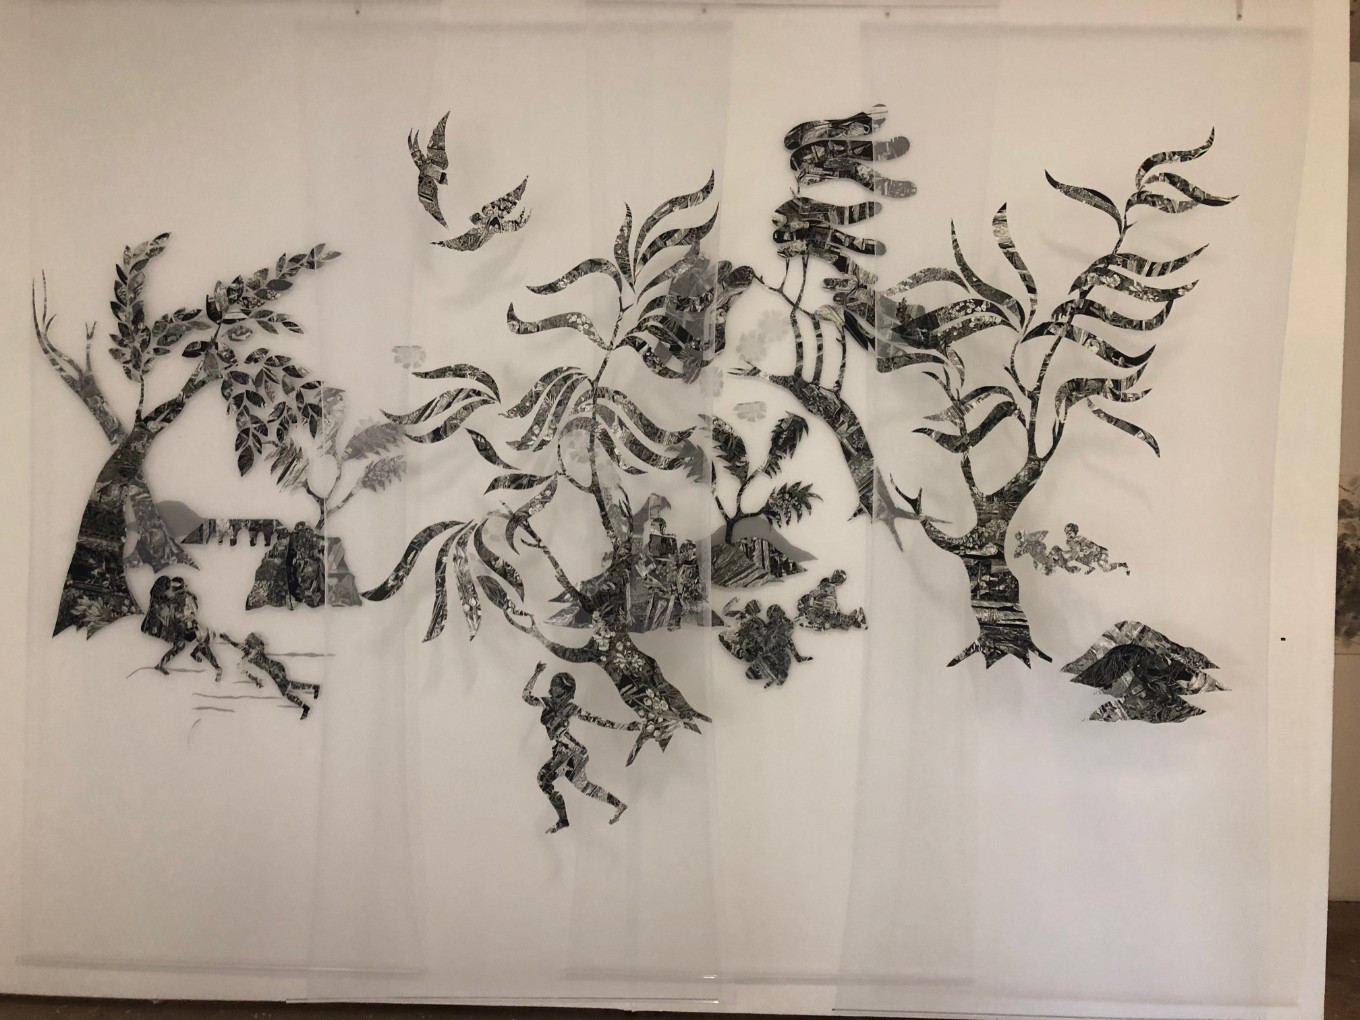 'Olley Land' 2019 - Christine Druitt-Preston (four panels hung on two parallel tracks) hand-stitched Wenzhou paper lino block print.